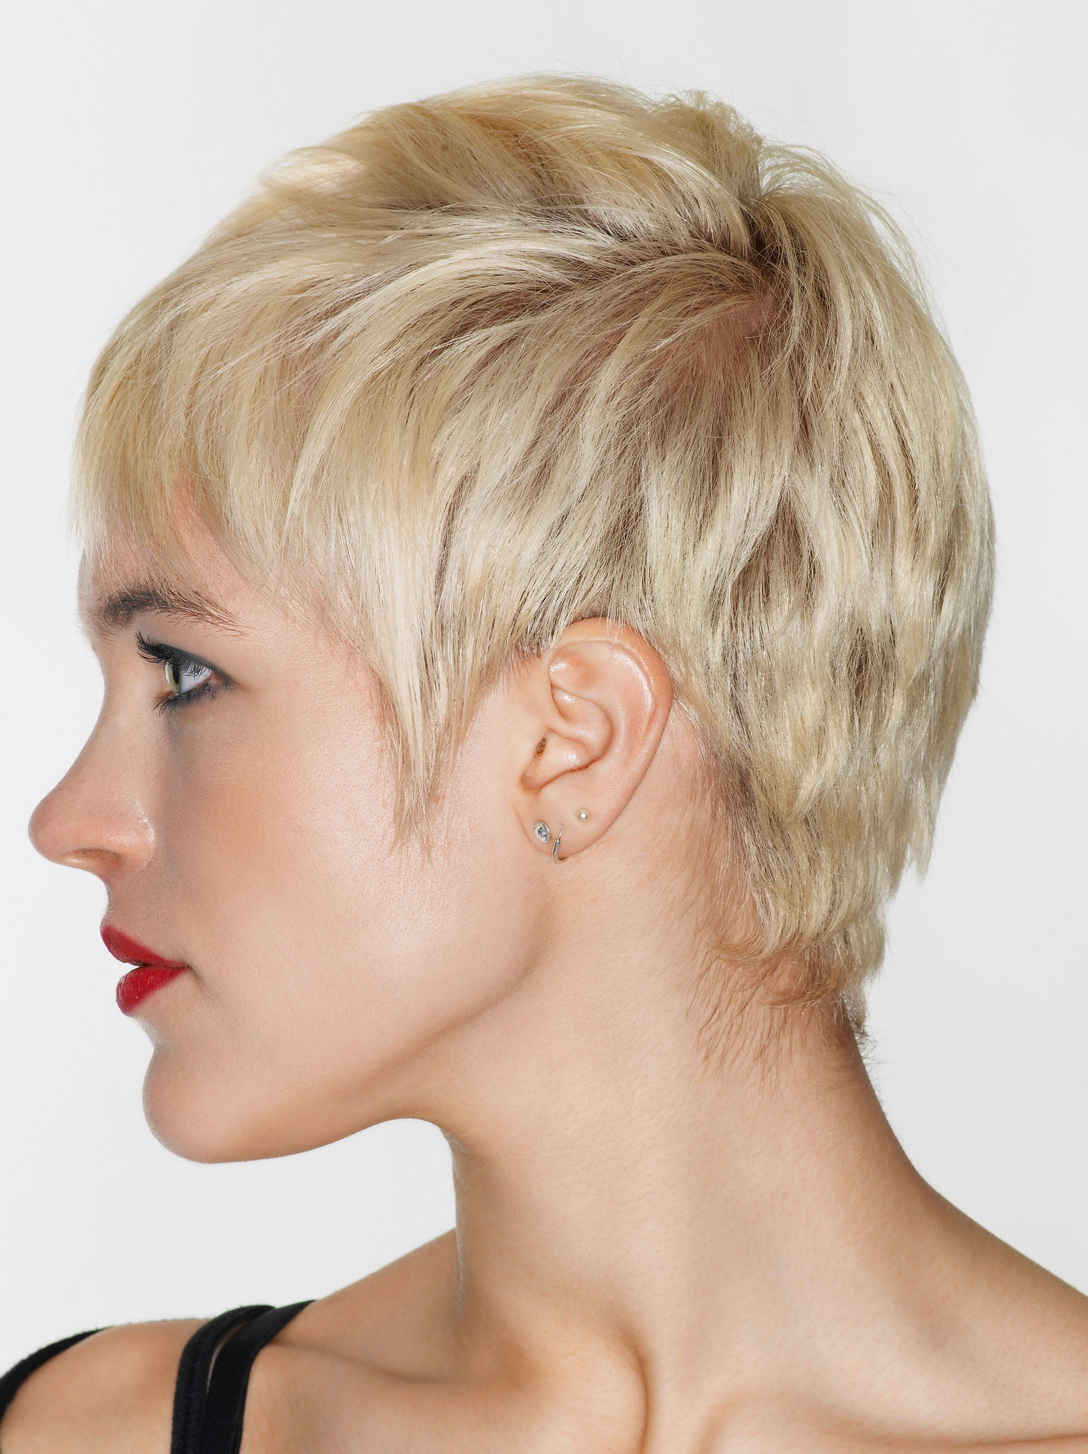 Short Layered Pixie Haircut For Inverted Triangle And Heart Faces 2018 Pertaining To Pixie Layered Short Haircuts (View 23 of 25)